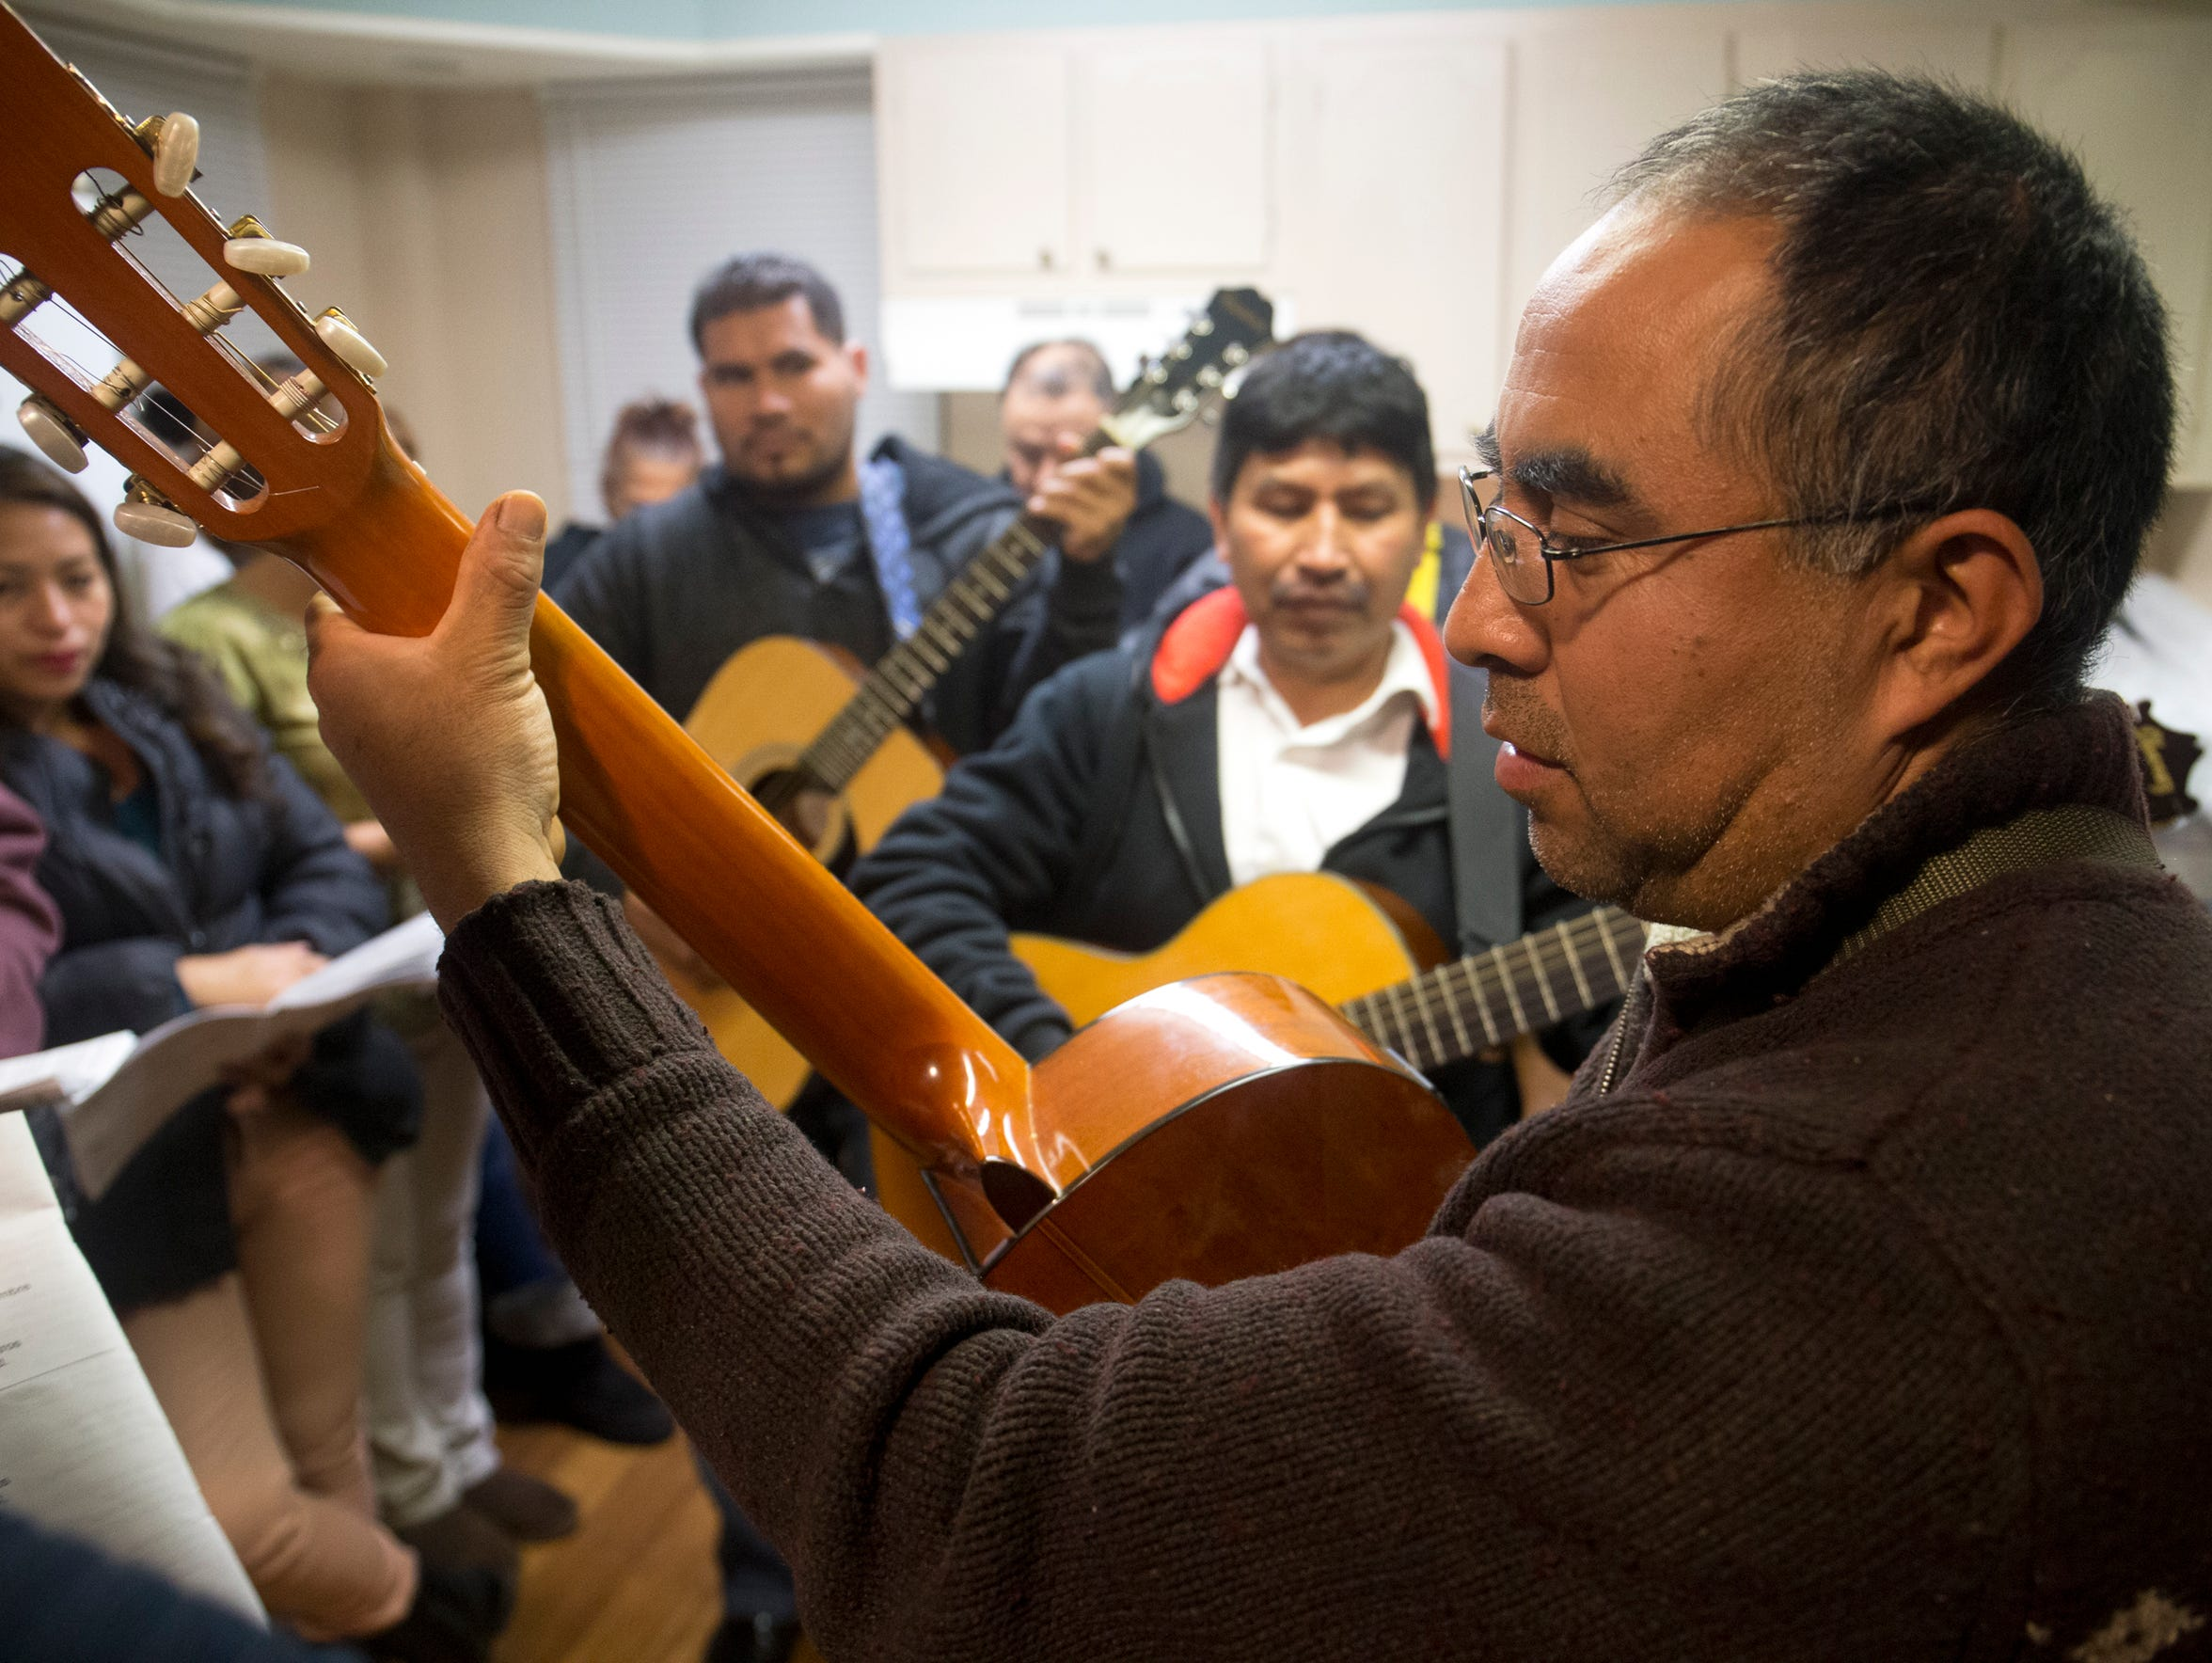 Luis Tapia of Lakewood is among the guitarists playing